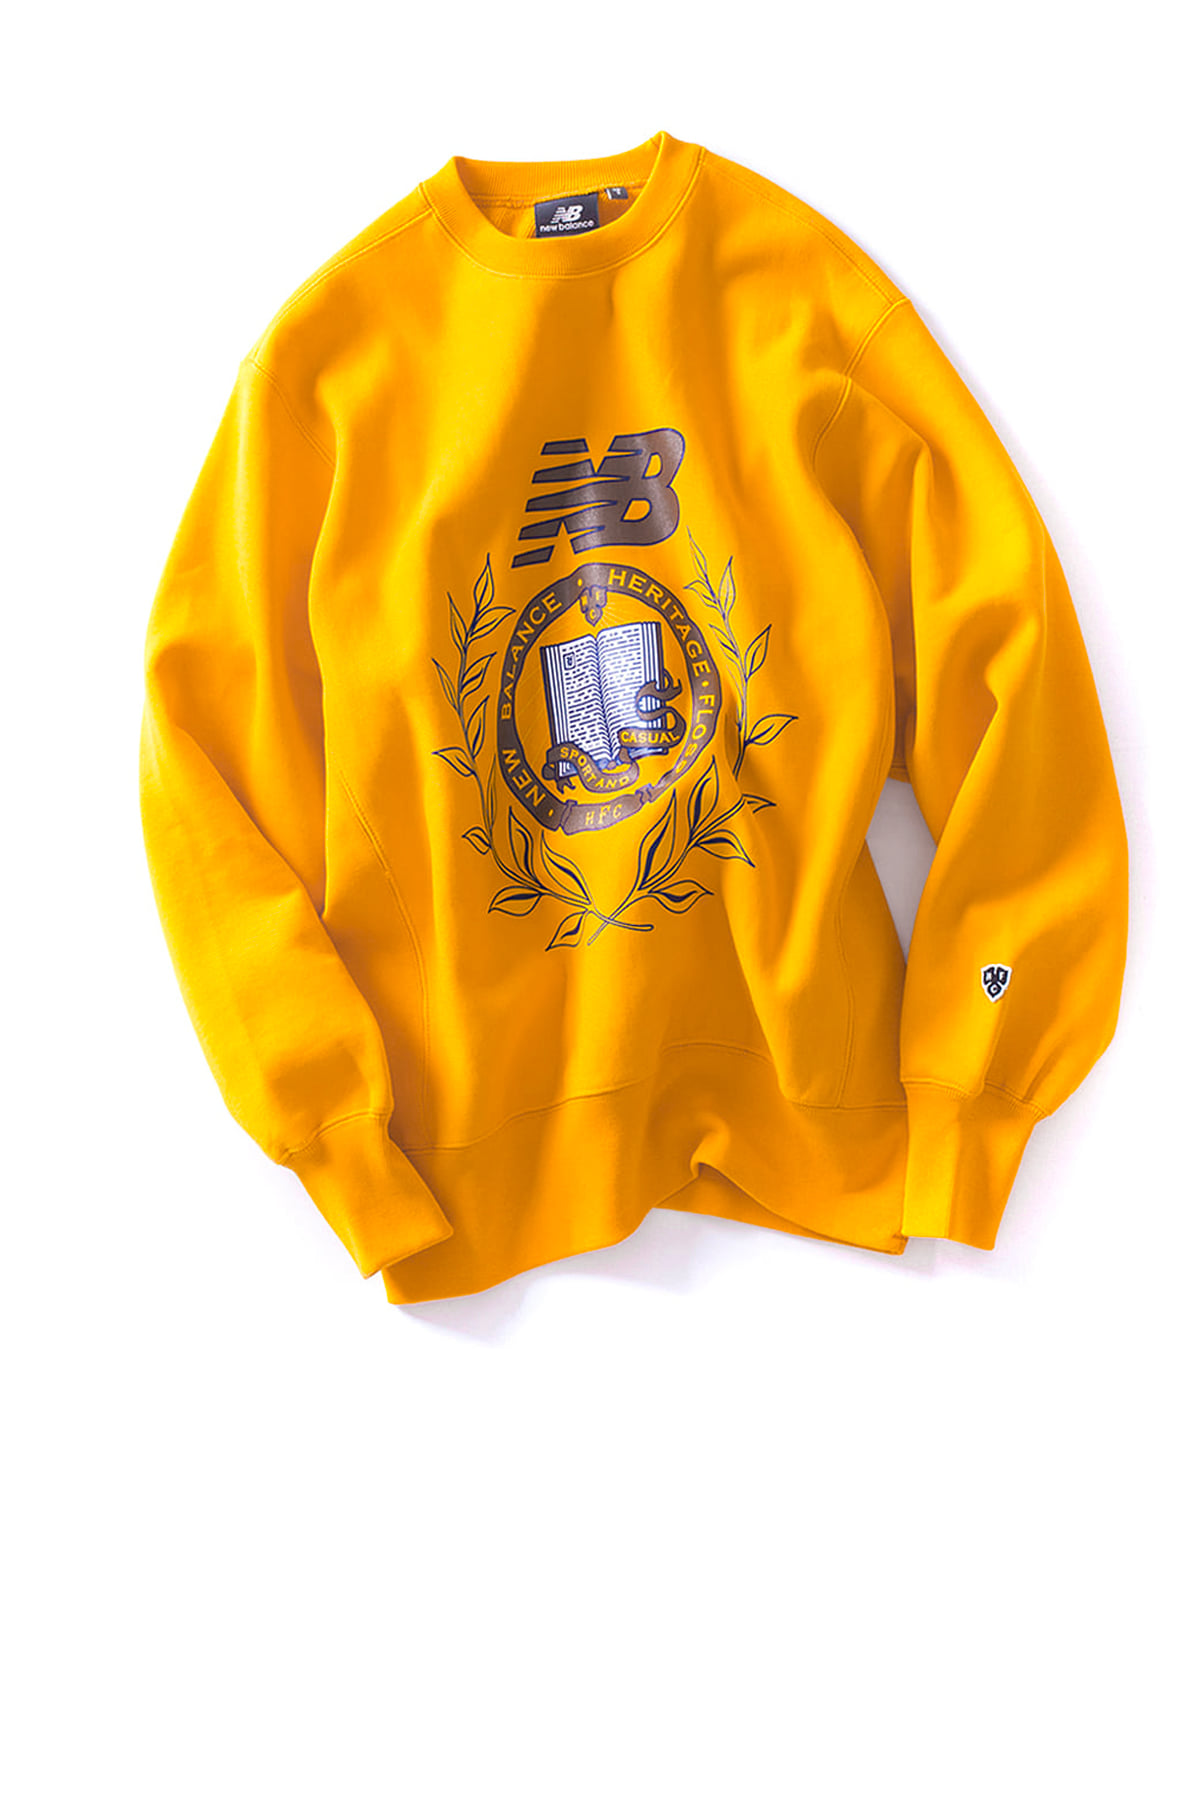 NB X Heritage Floss : Collage Crewneck (Yellow)